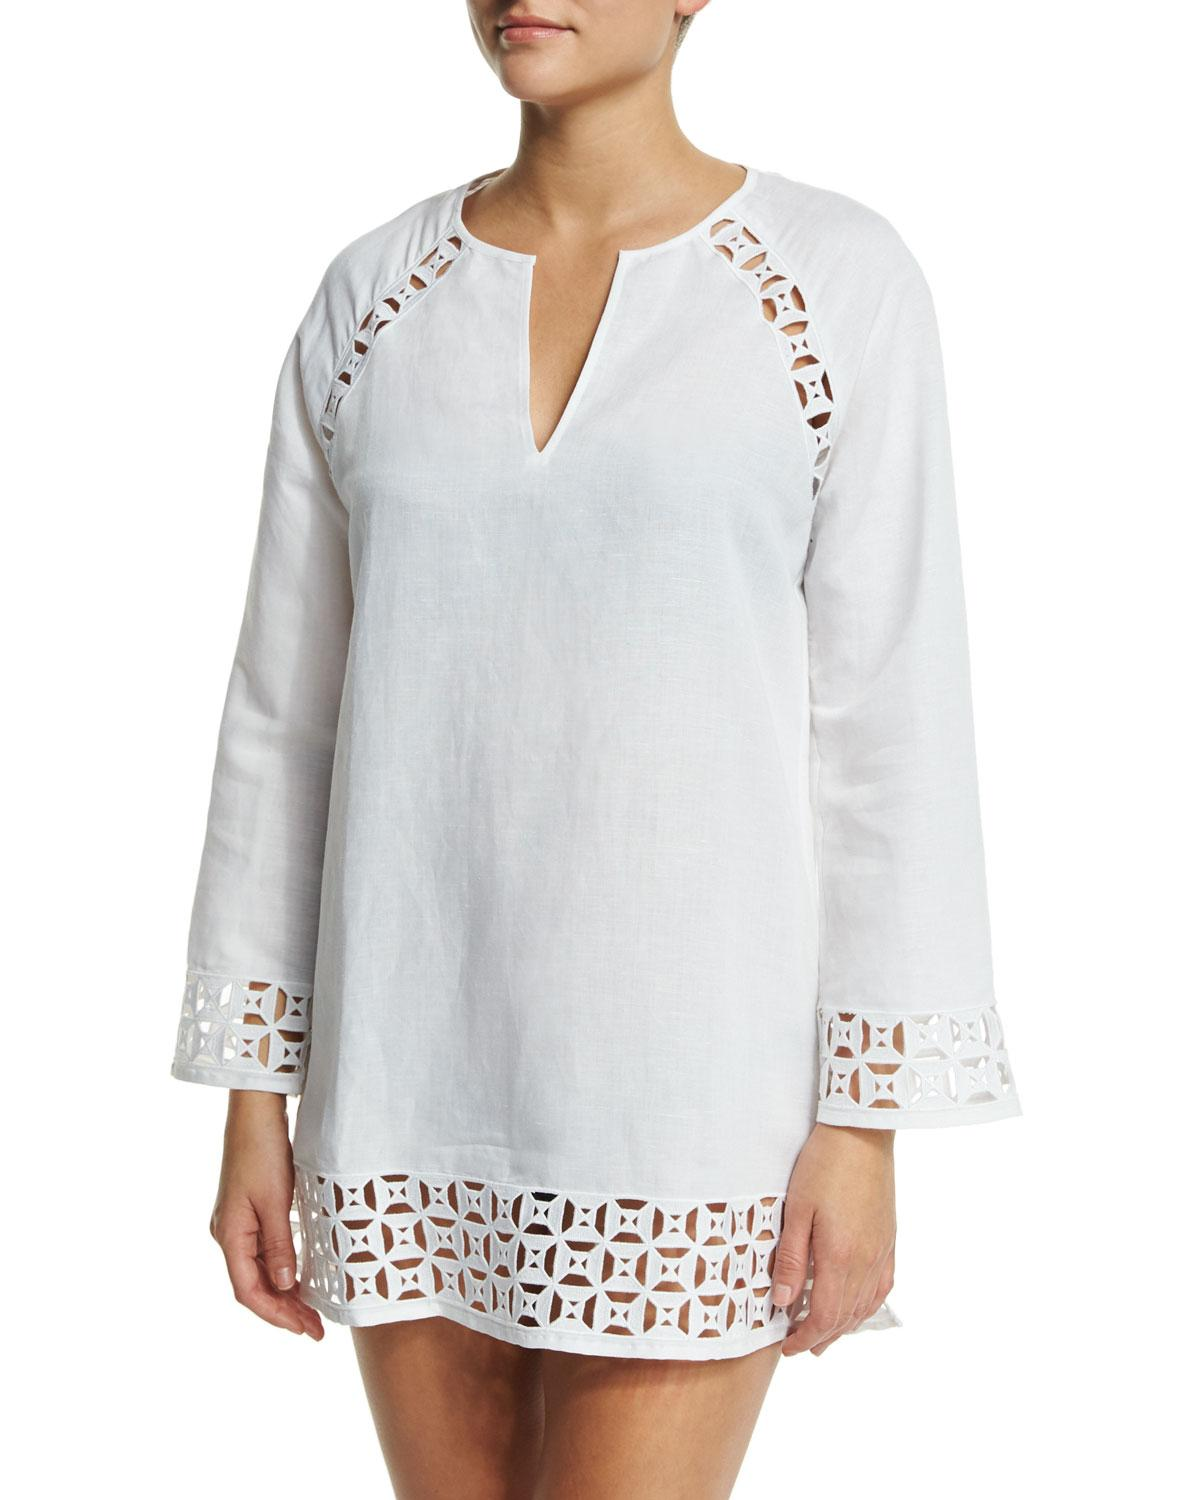 Tory Burch Embroidered Cutout Linen-blend Tunic Coverup In White/white